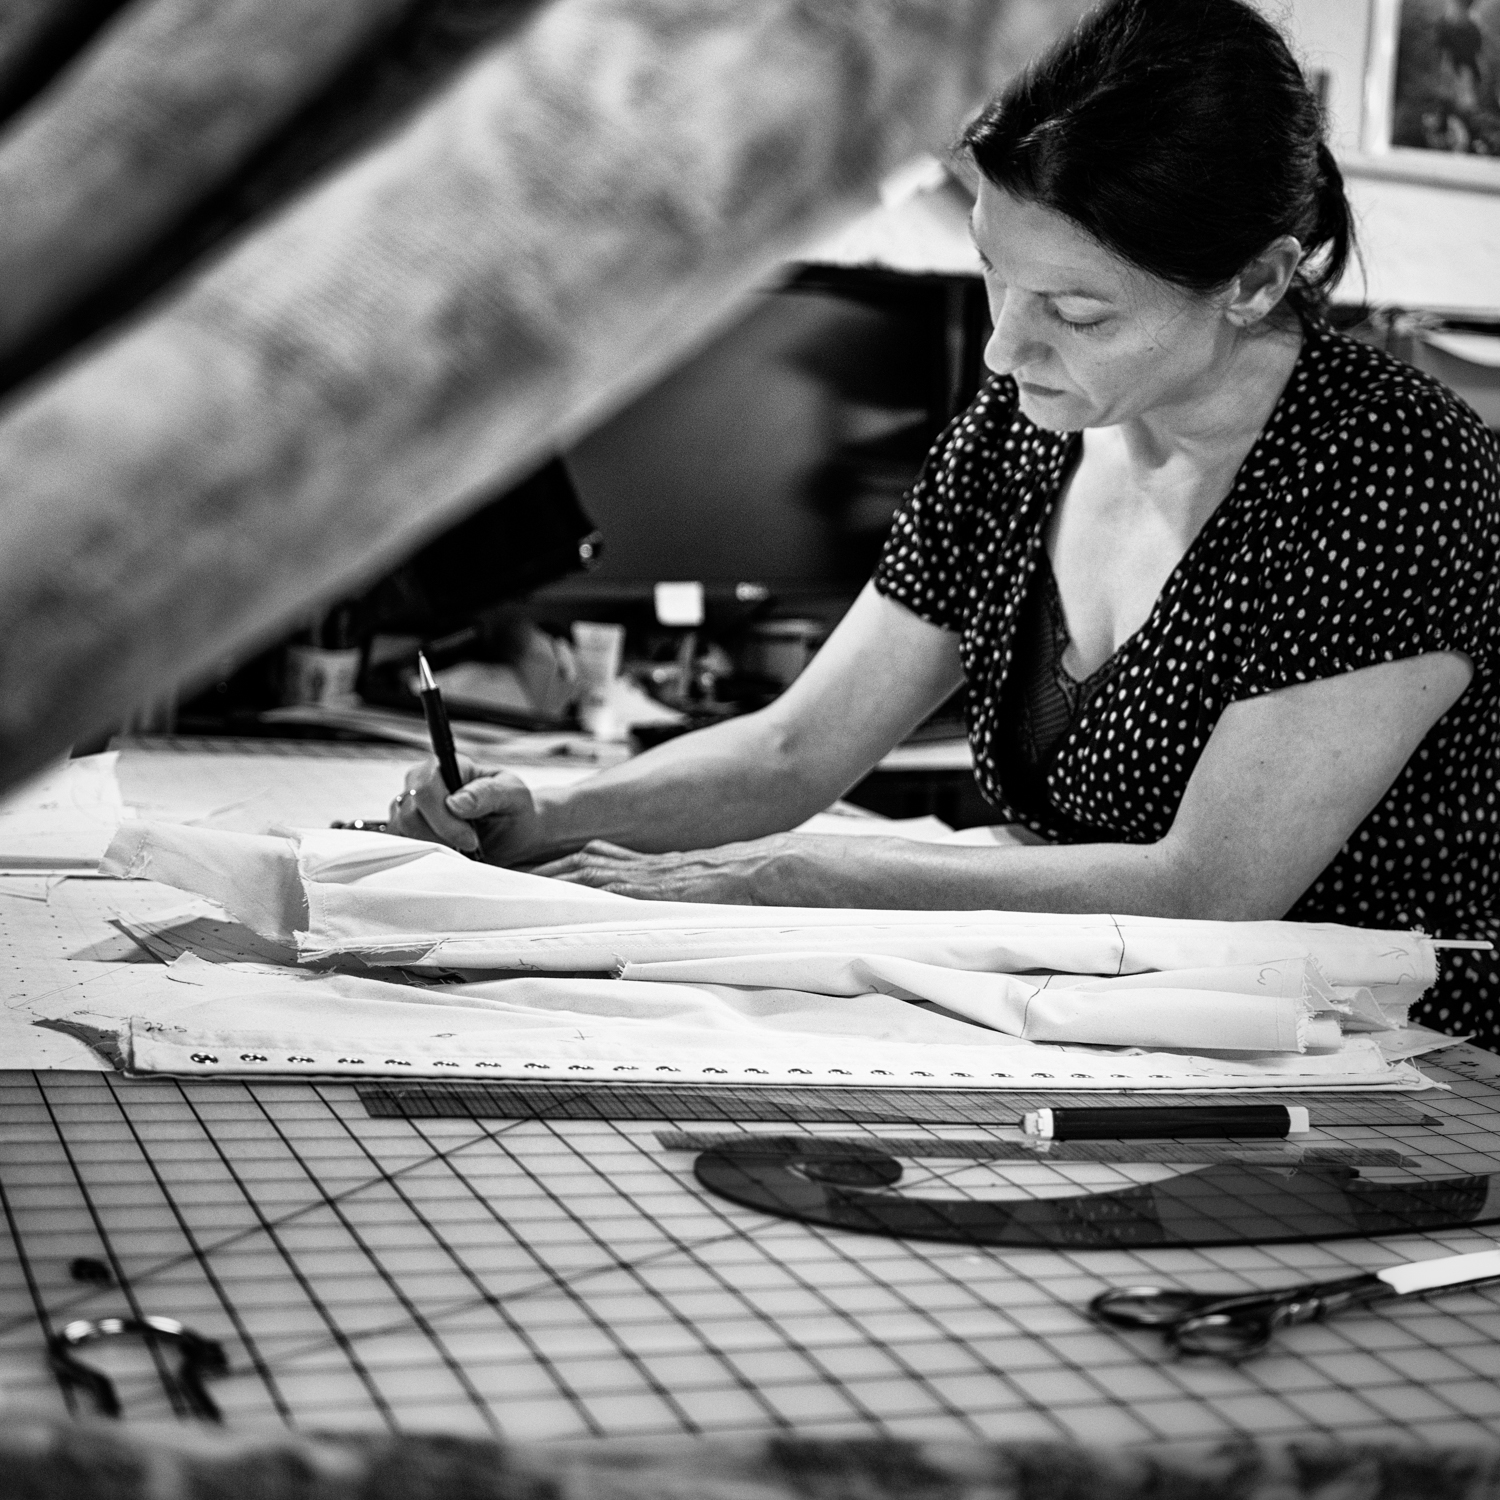 Our Process - Our dedication to quality is possible thanks to our unique on-site production process. Step behind the curtains of our boutique and you'll find our workroom, humming with the activity of our expert production team. This setup allows us the flexibility of an independent corsetiere with the reliability of full-scale manufacturing. We employ a team of five cutters, stitchers, and drafters who work closely together to fulfill Autumn's visions of small-batch corsetry. Autumn remains intimately involved in the process of fitting bespoke corsets as well as prototyping new designs and construction techniques.